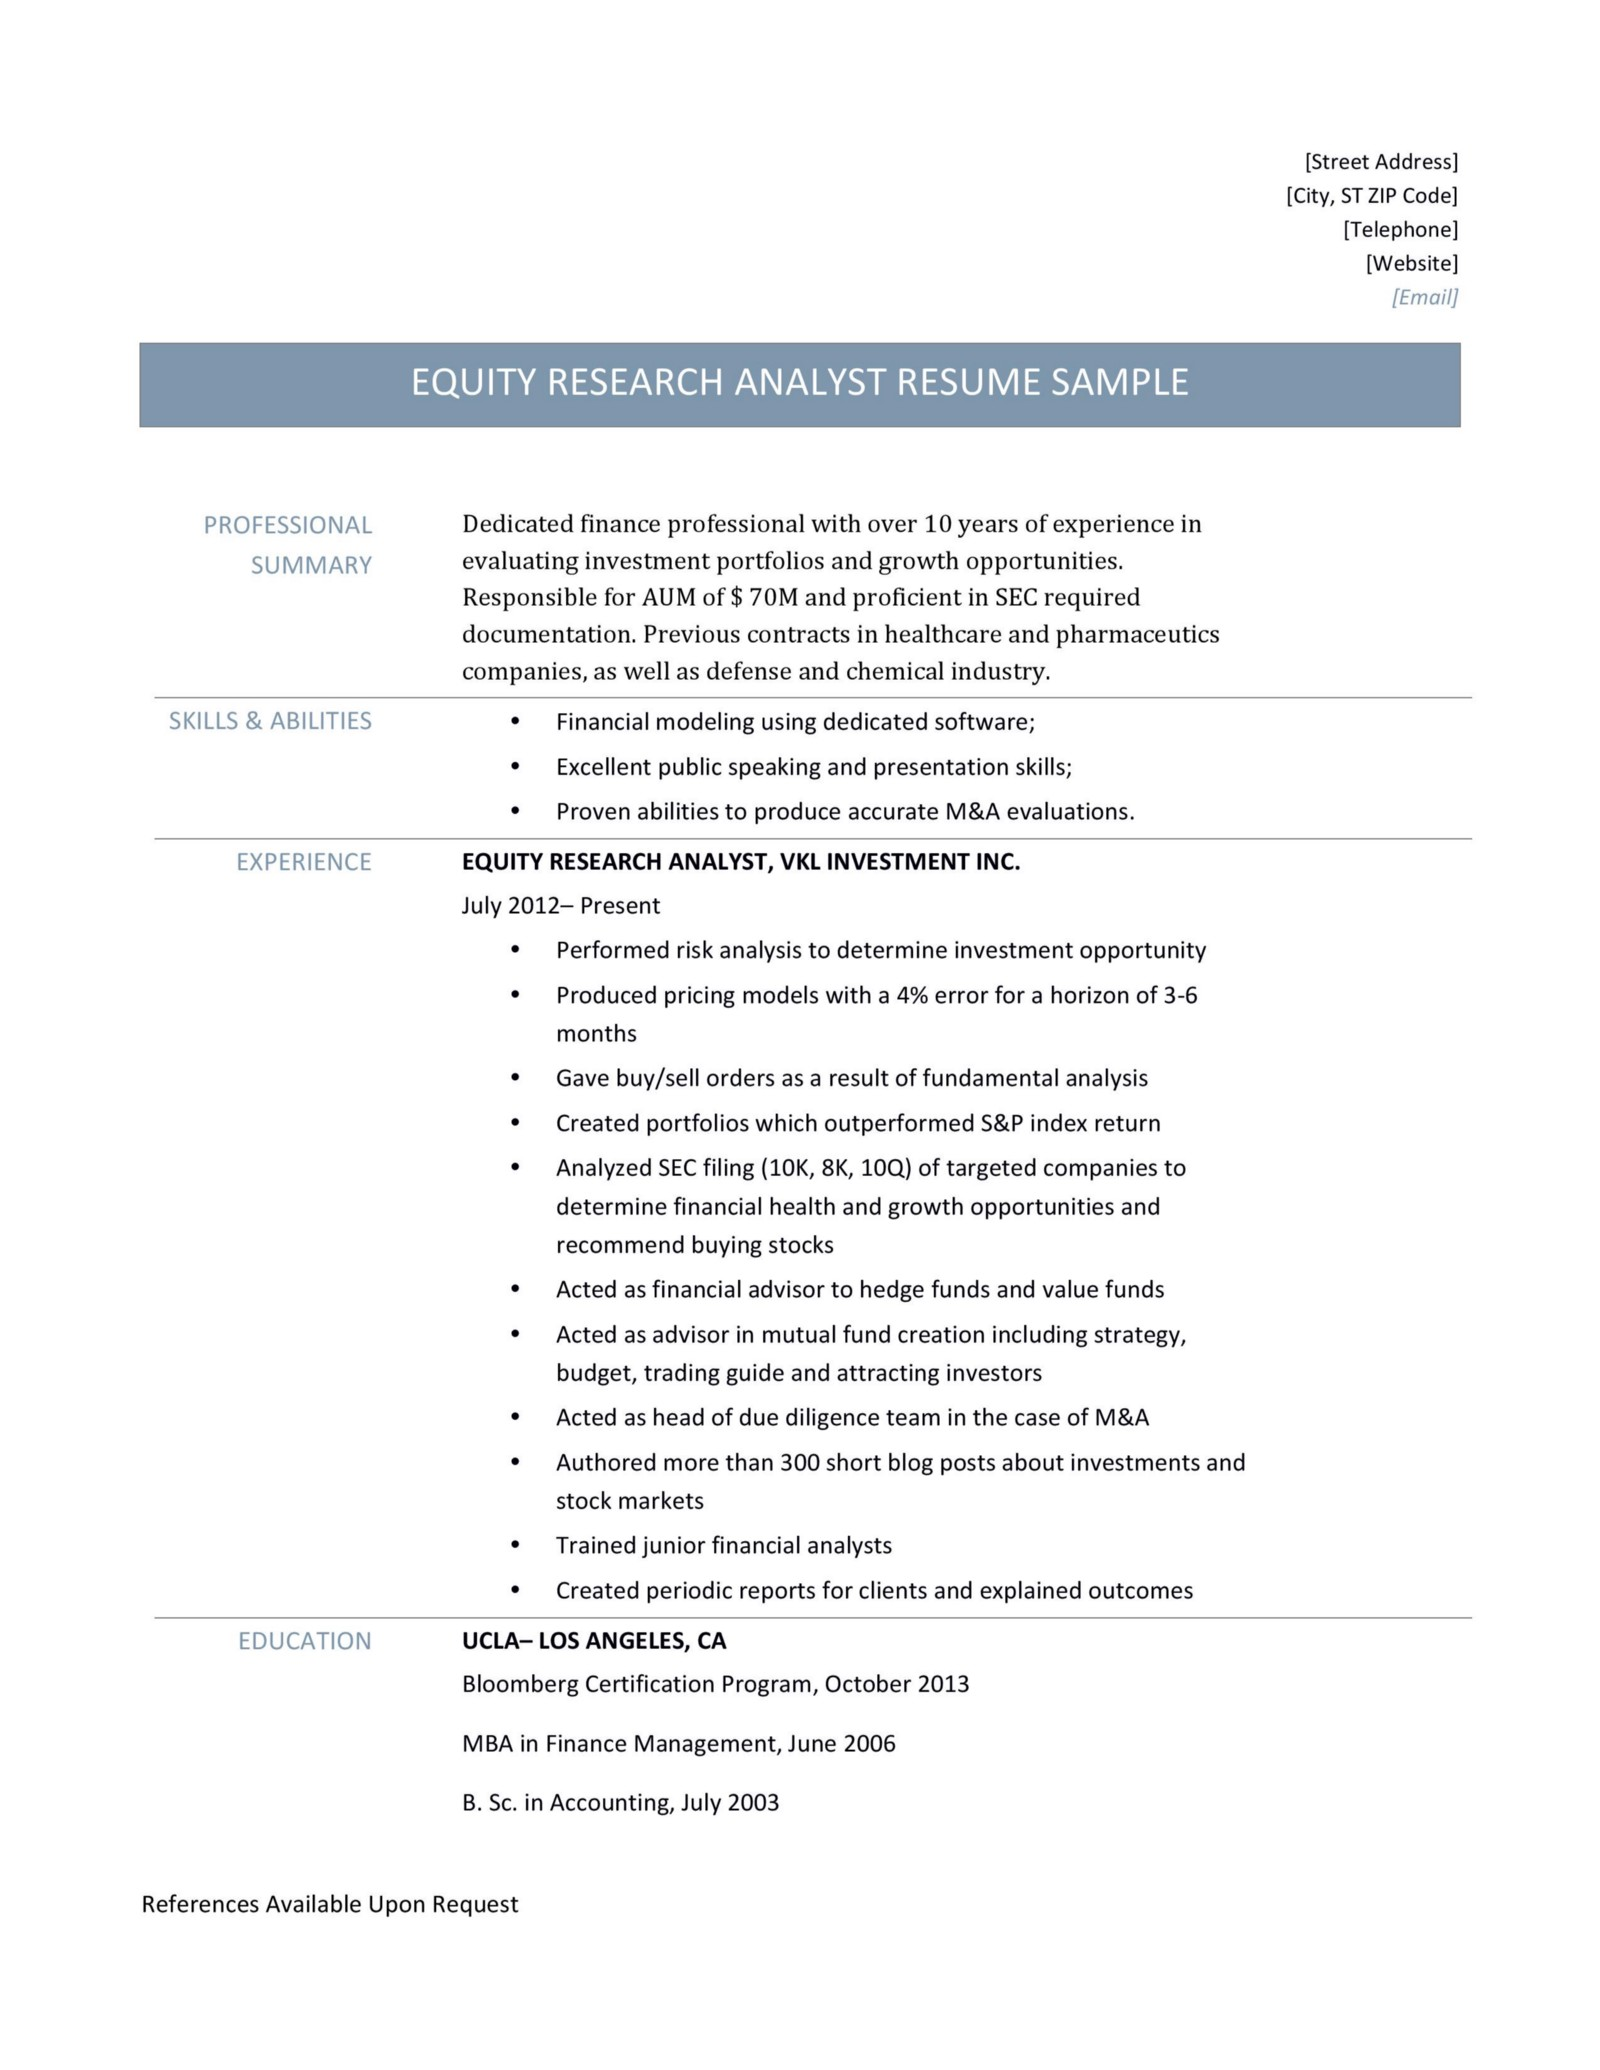 Resume Template For Equity Research Analyst